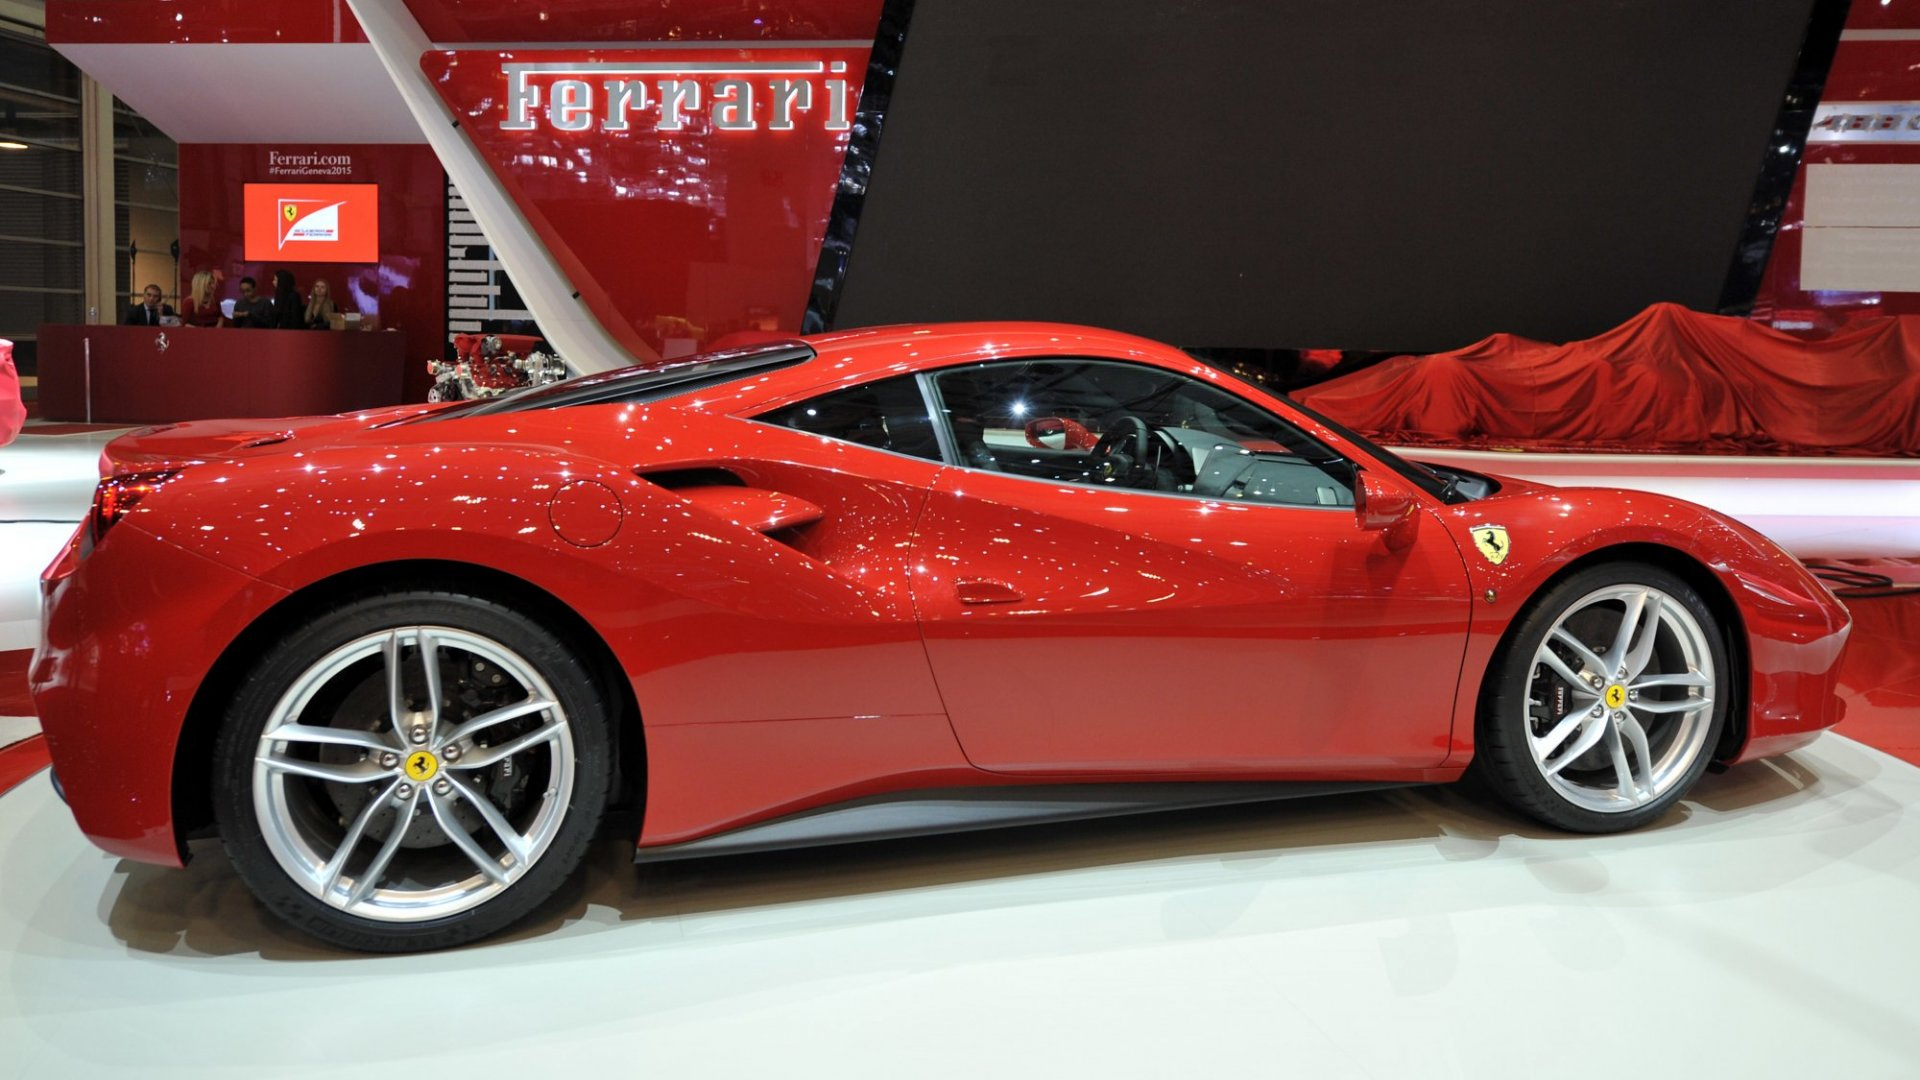 Ferrari's Electric Tesla Killer Is Coming. But You Still Have Time to Save Up